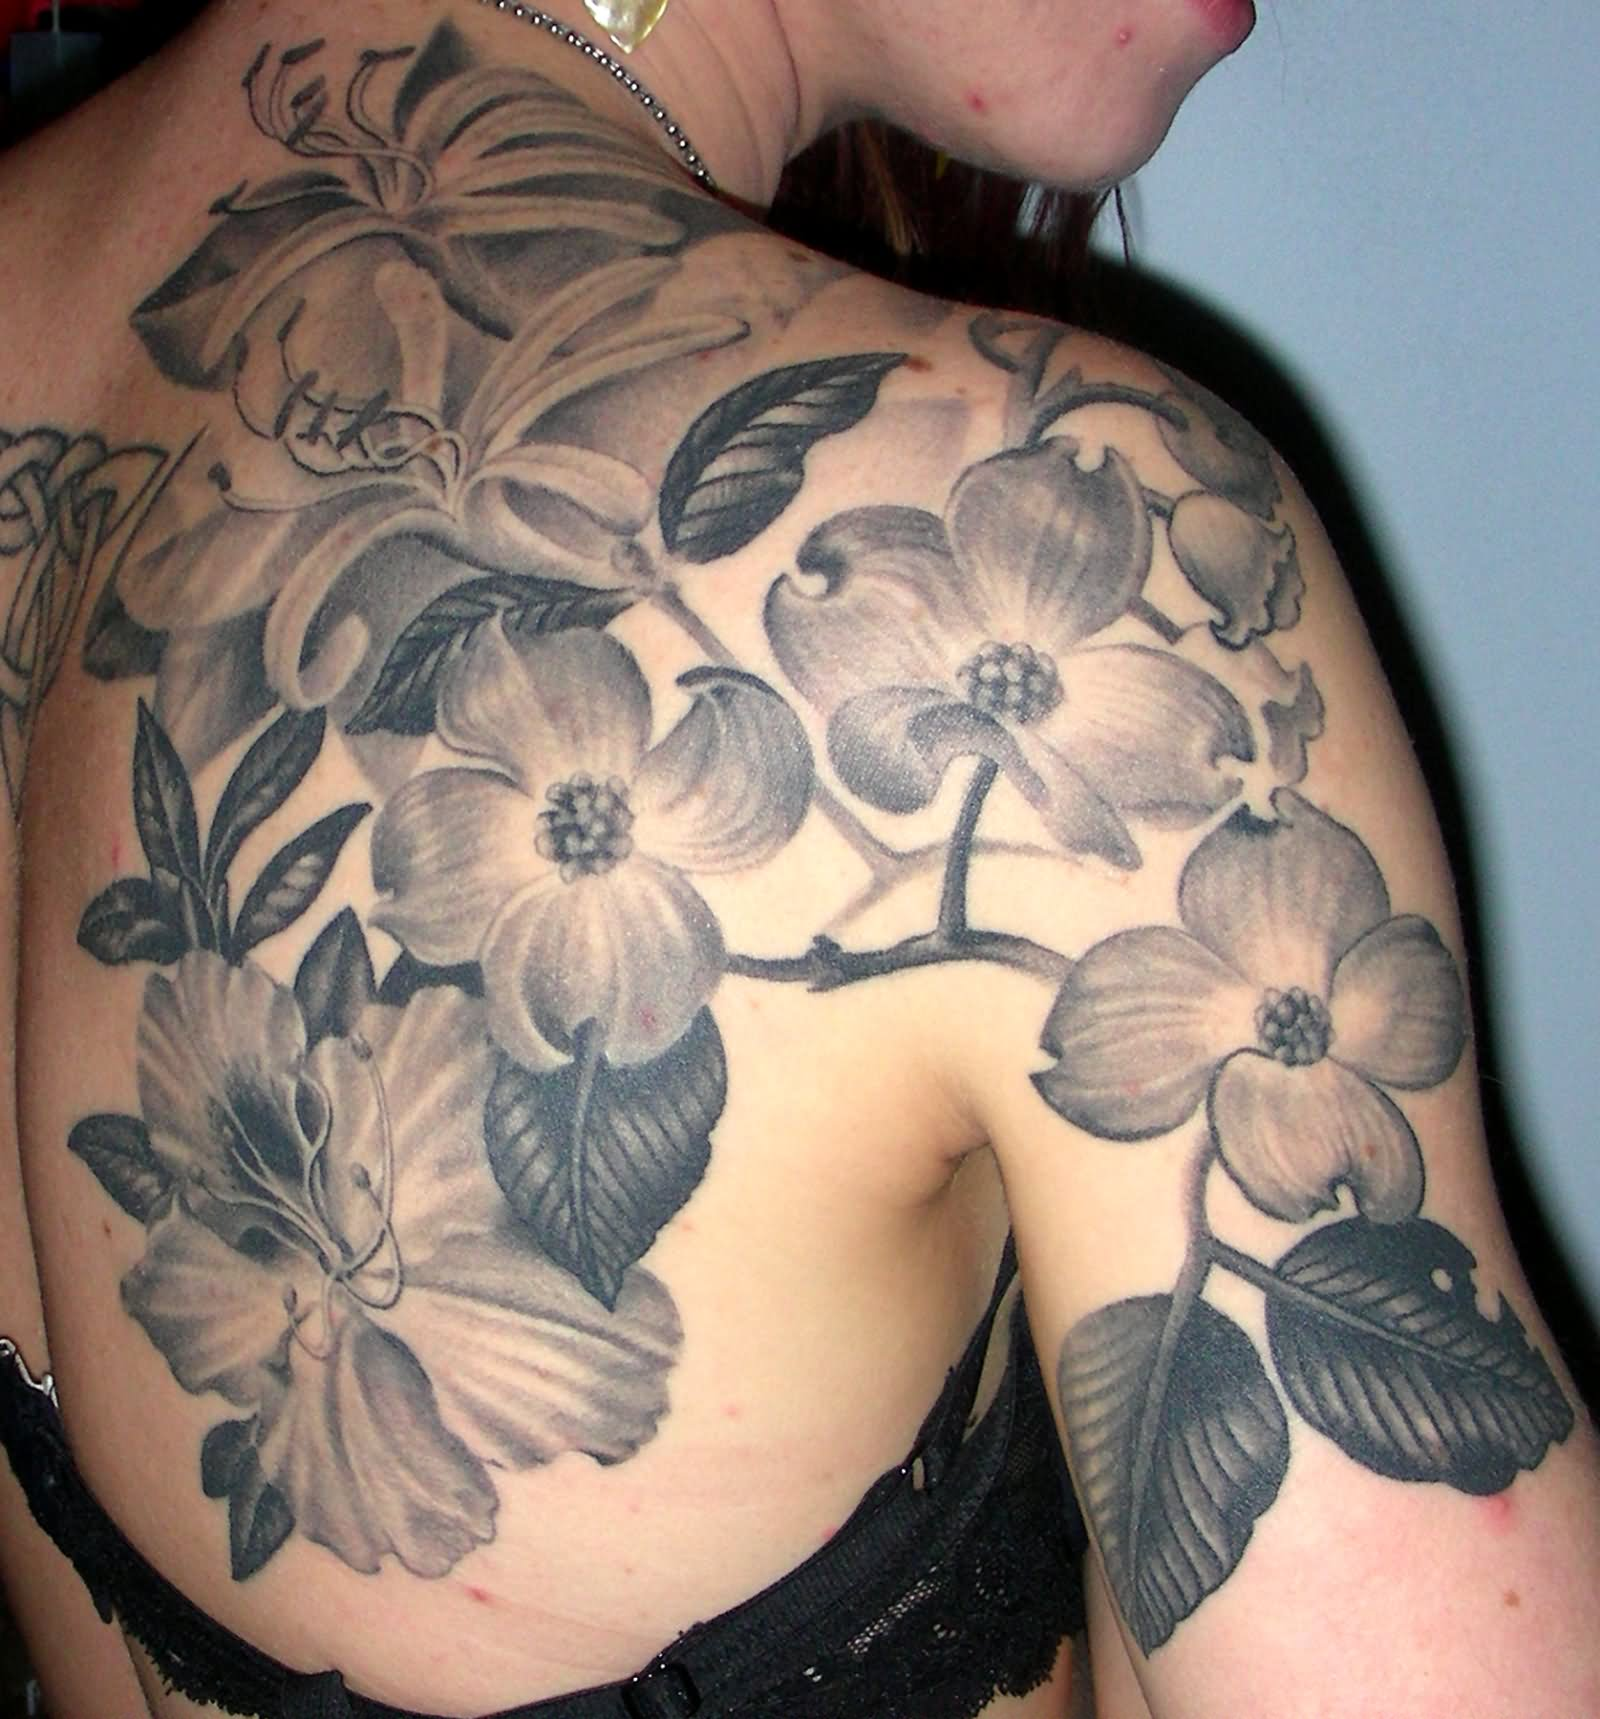 Floral Tattoo Images Designs: 21+ Nice Floral Arm Tattoos